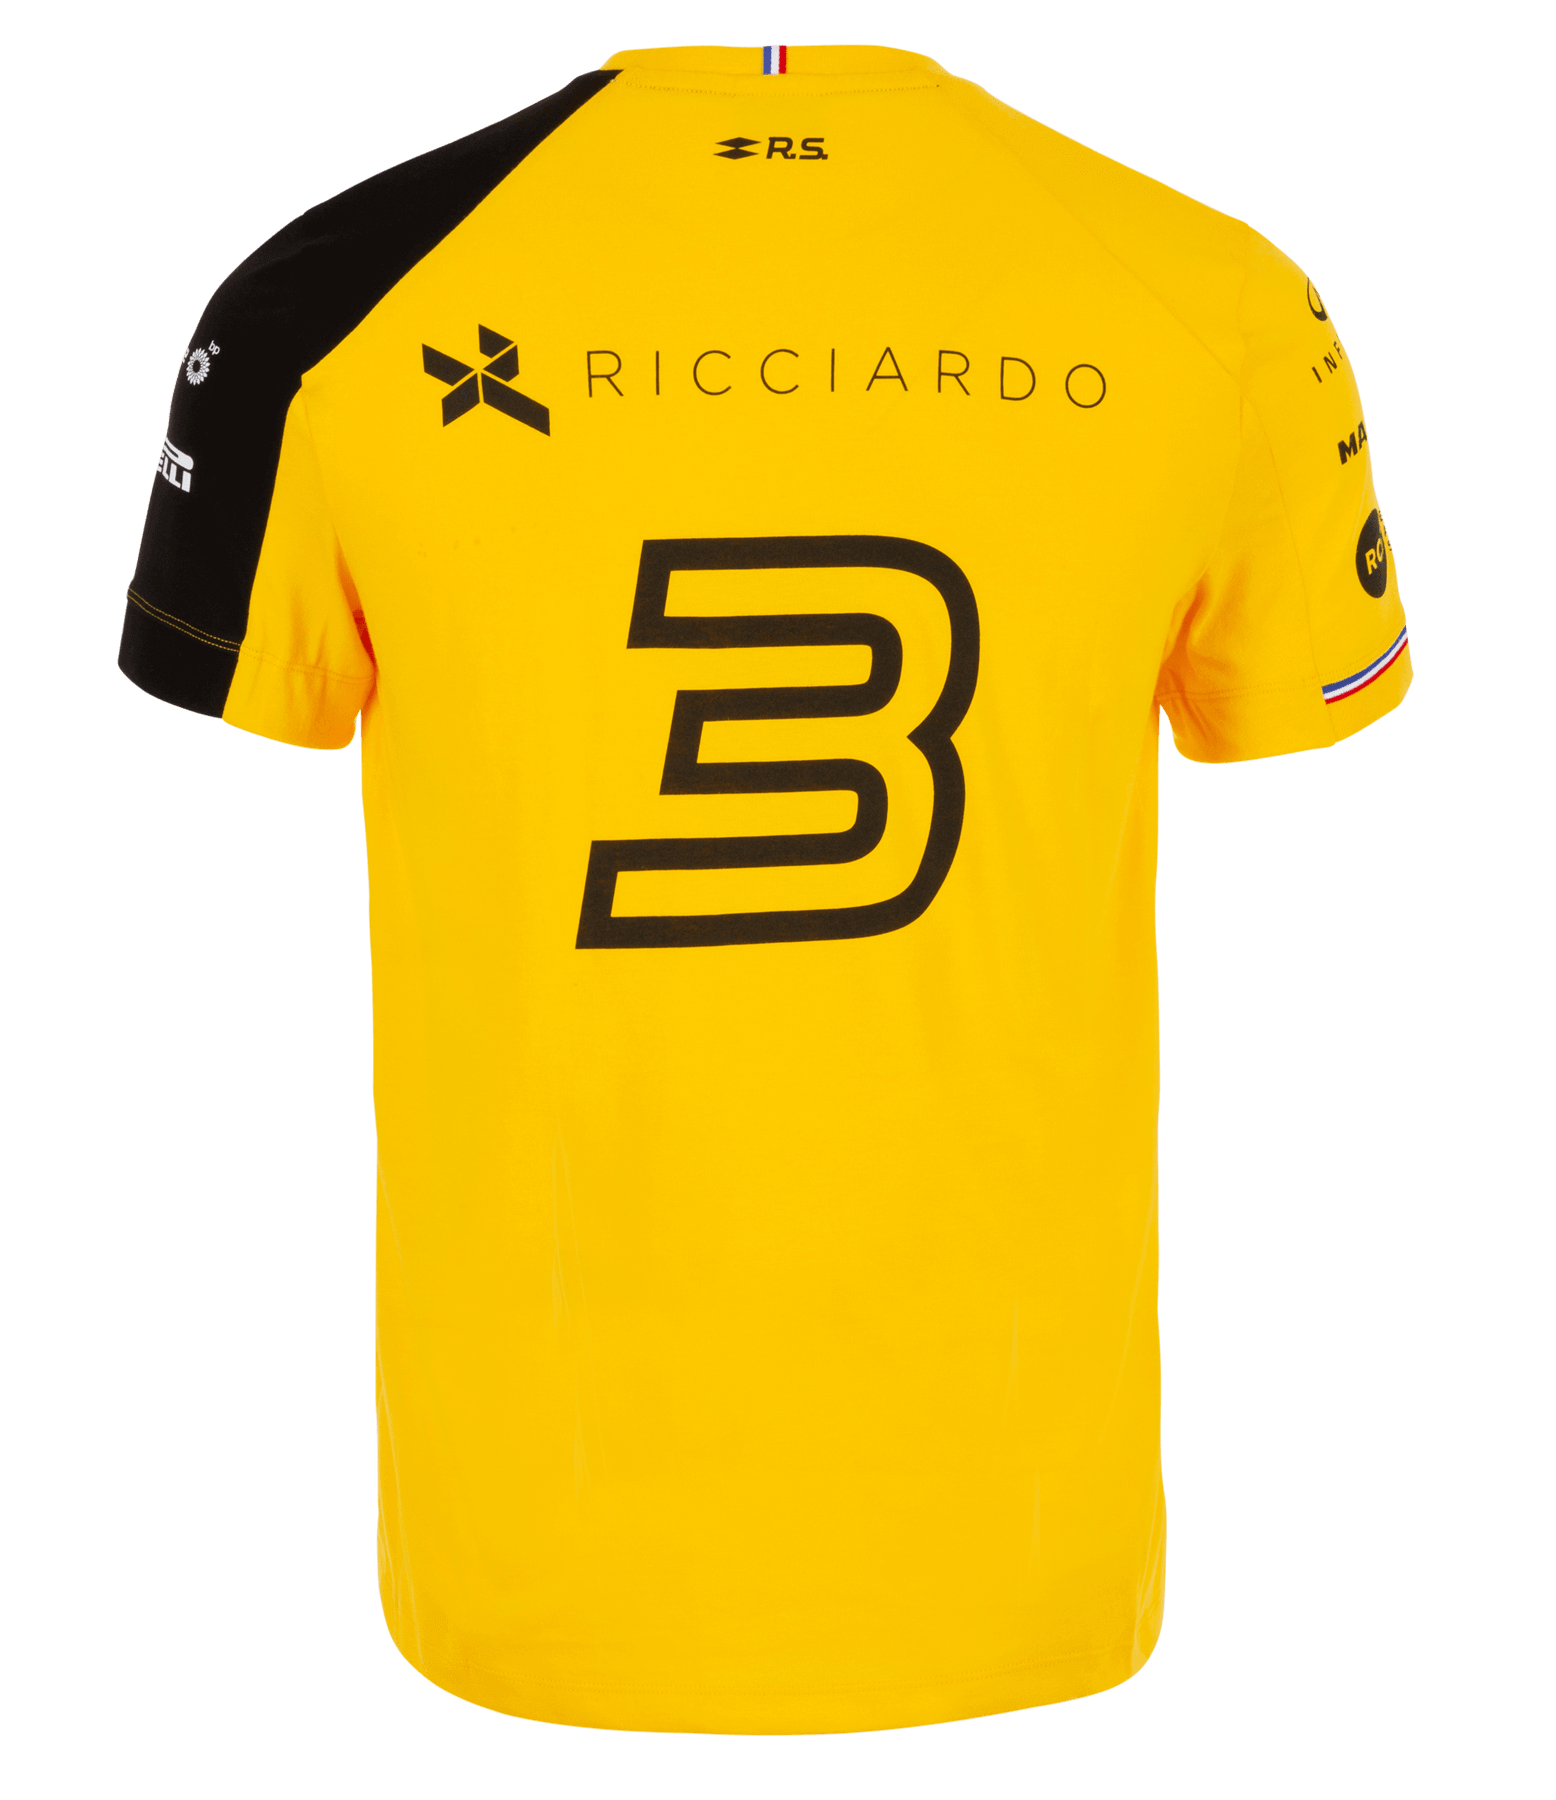 RENAULT F1® TEAM 2019 men's t-shirt - Ricciardo